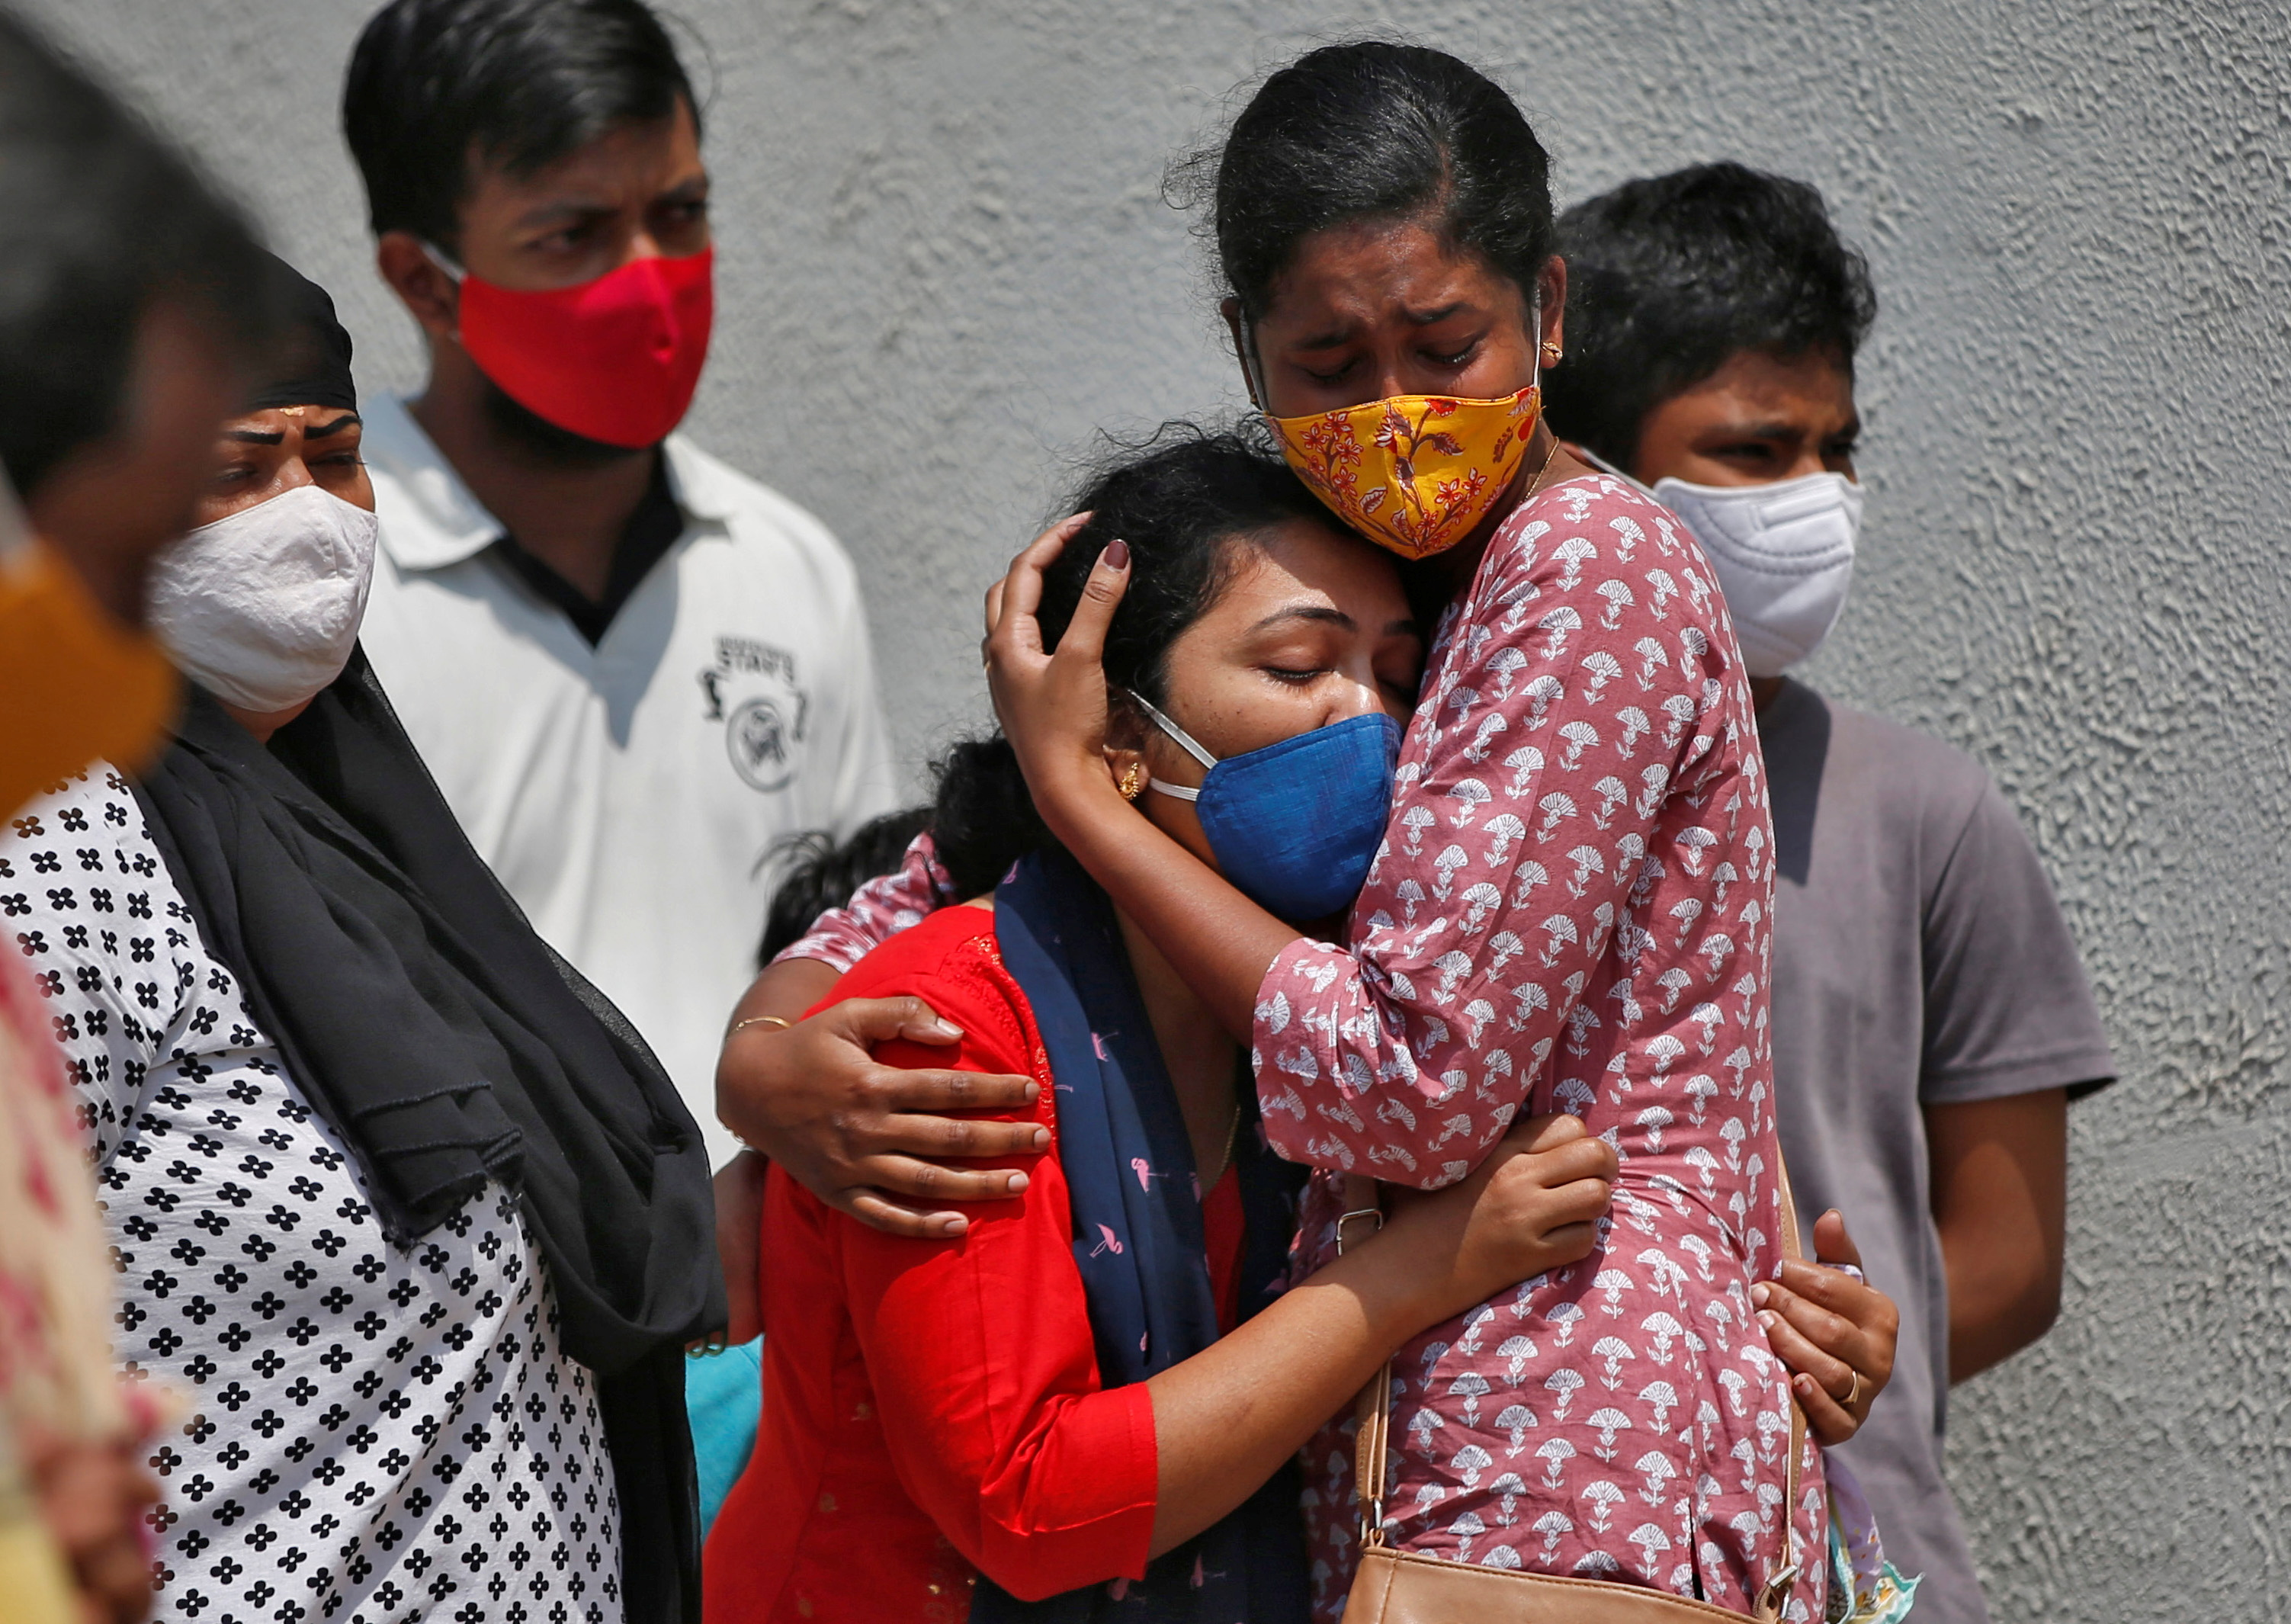 Indian hospitals battle 'chaotic' surge as daily virus infections cross  200,000 | Reuters